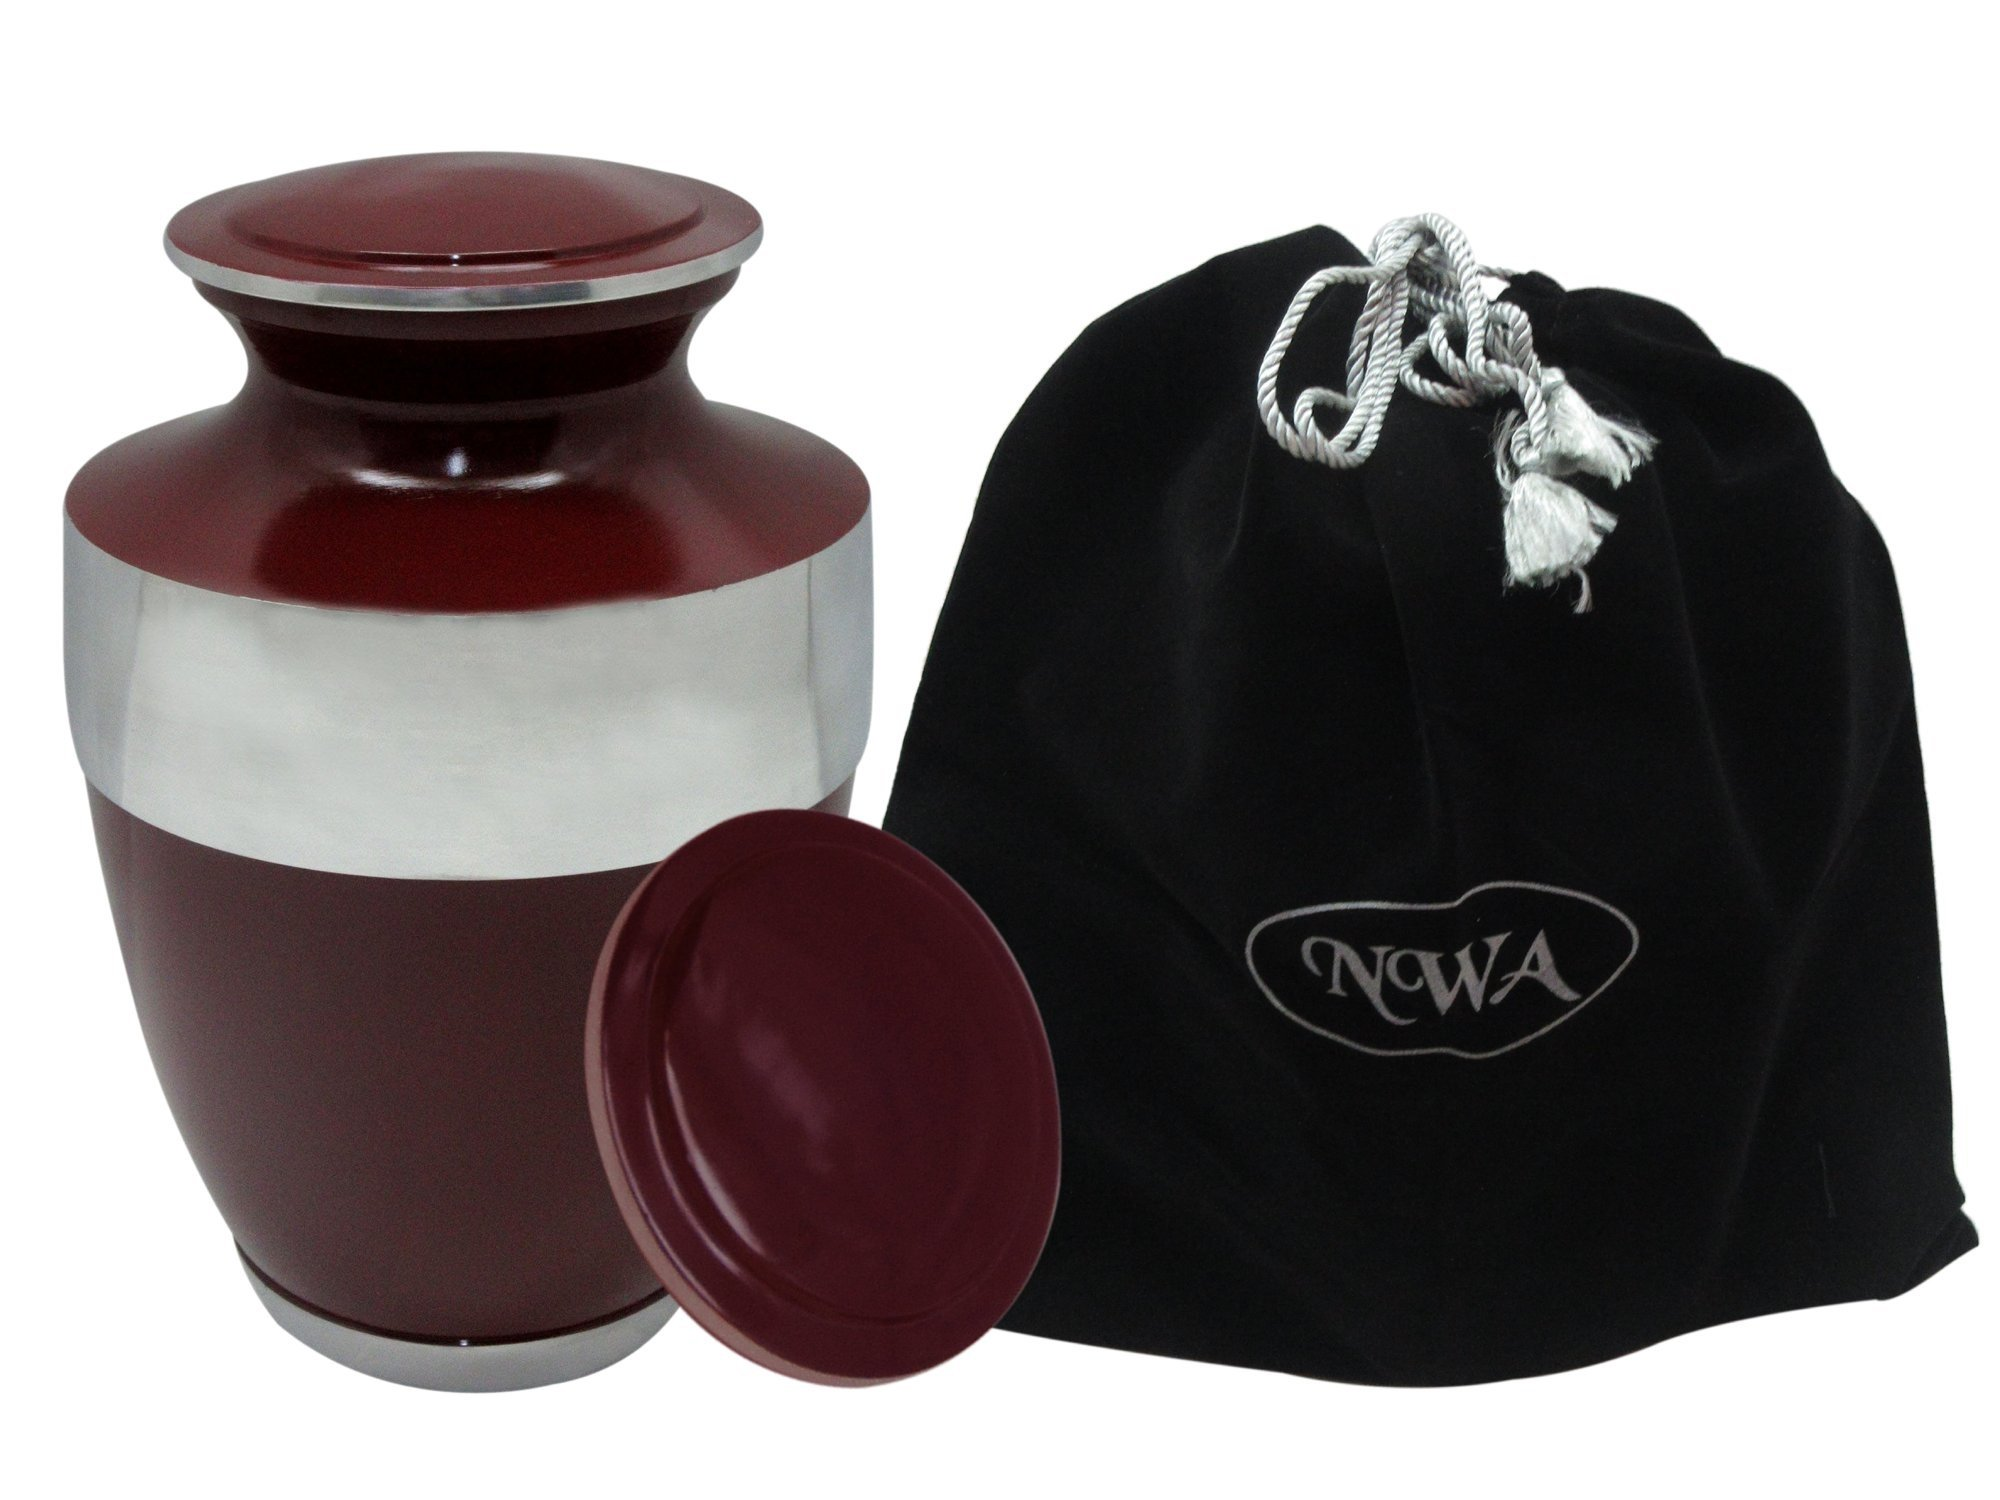 Urns for Human Ashes, Beautiful Personalised Maroon Cremation Urn, Memorial Adult Human Urn with customization and Velvet Bag